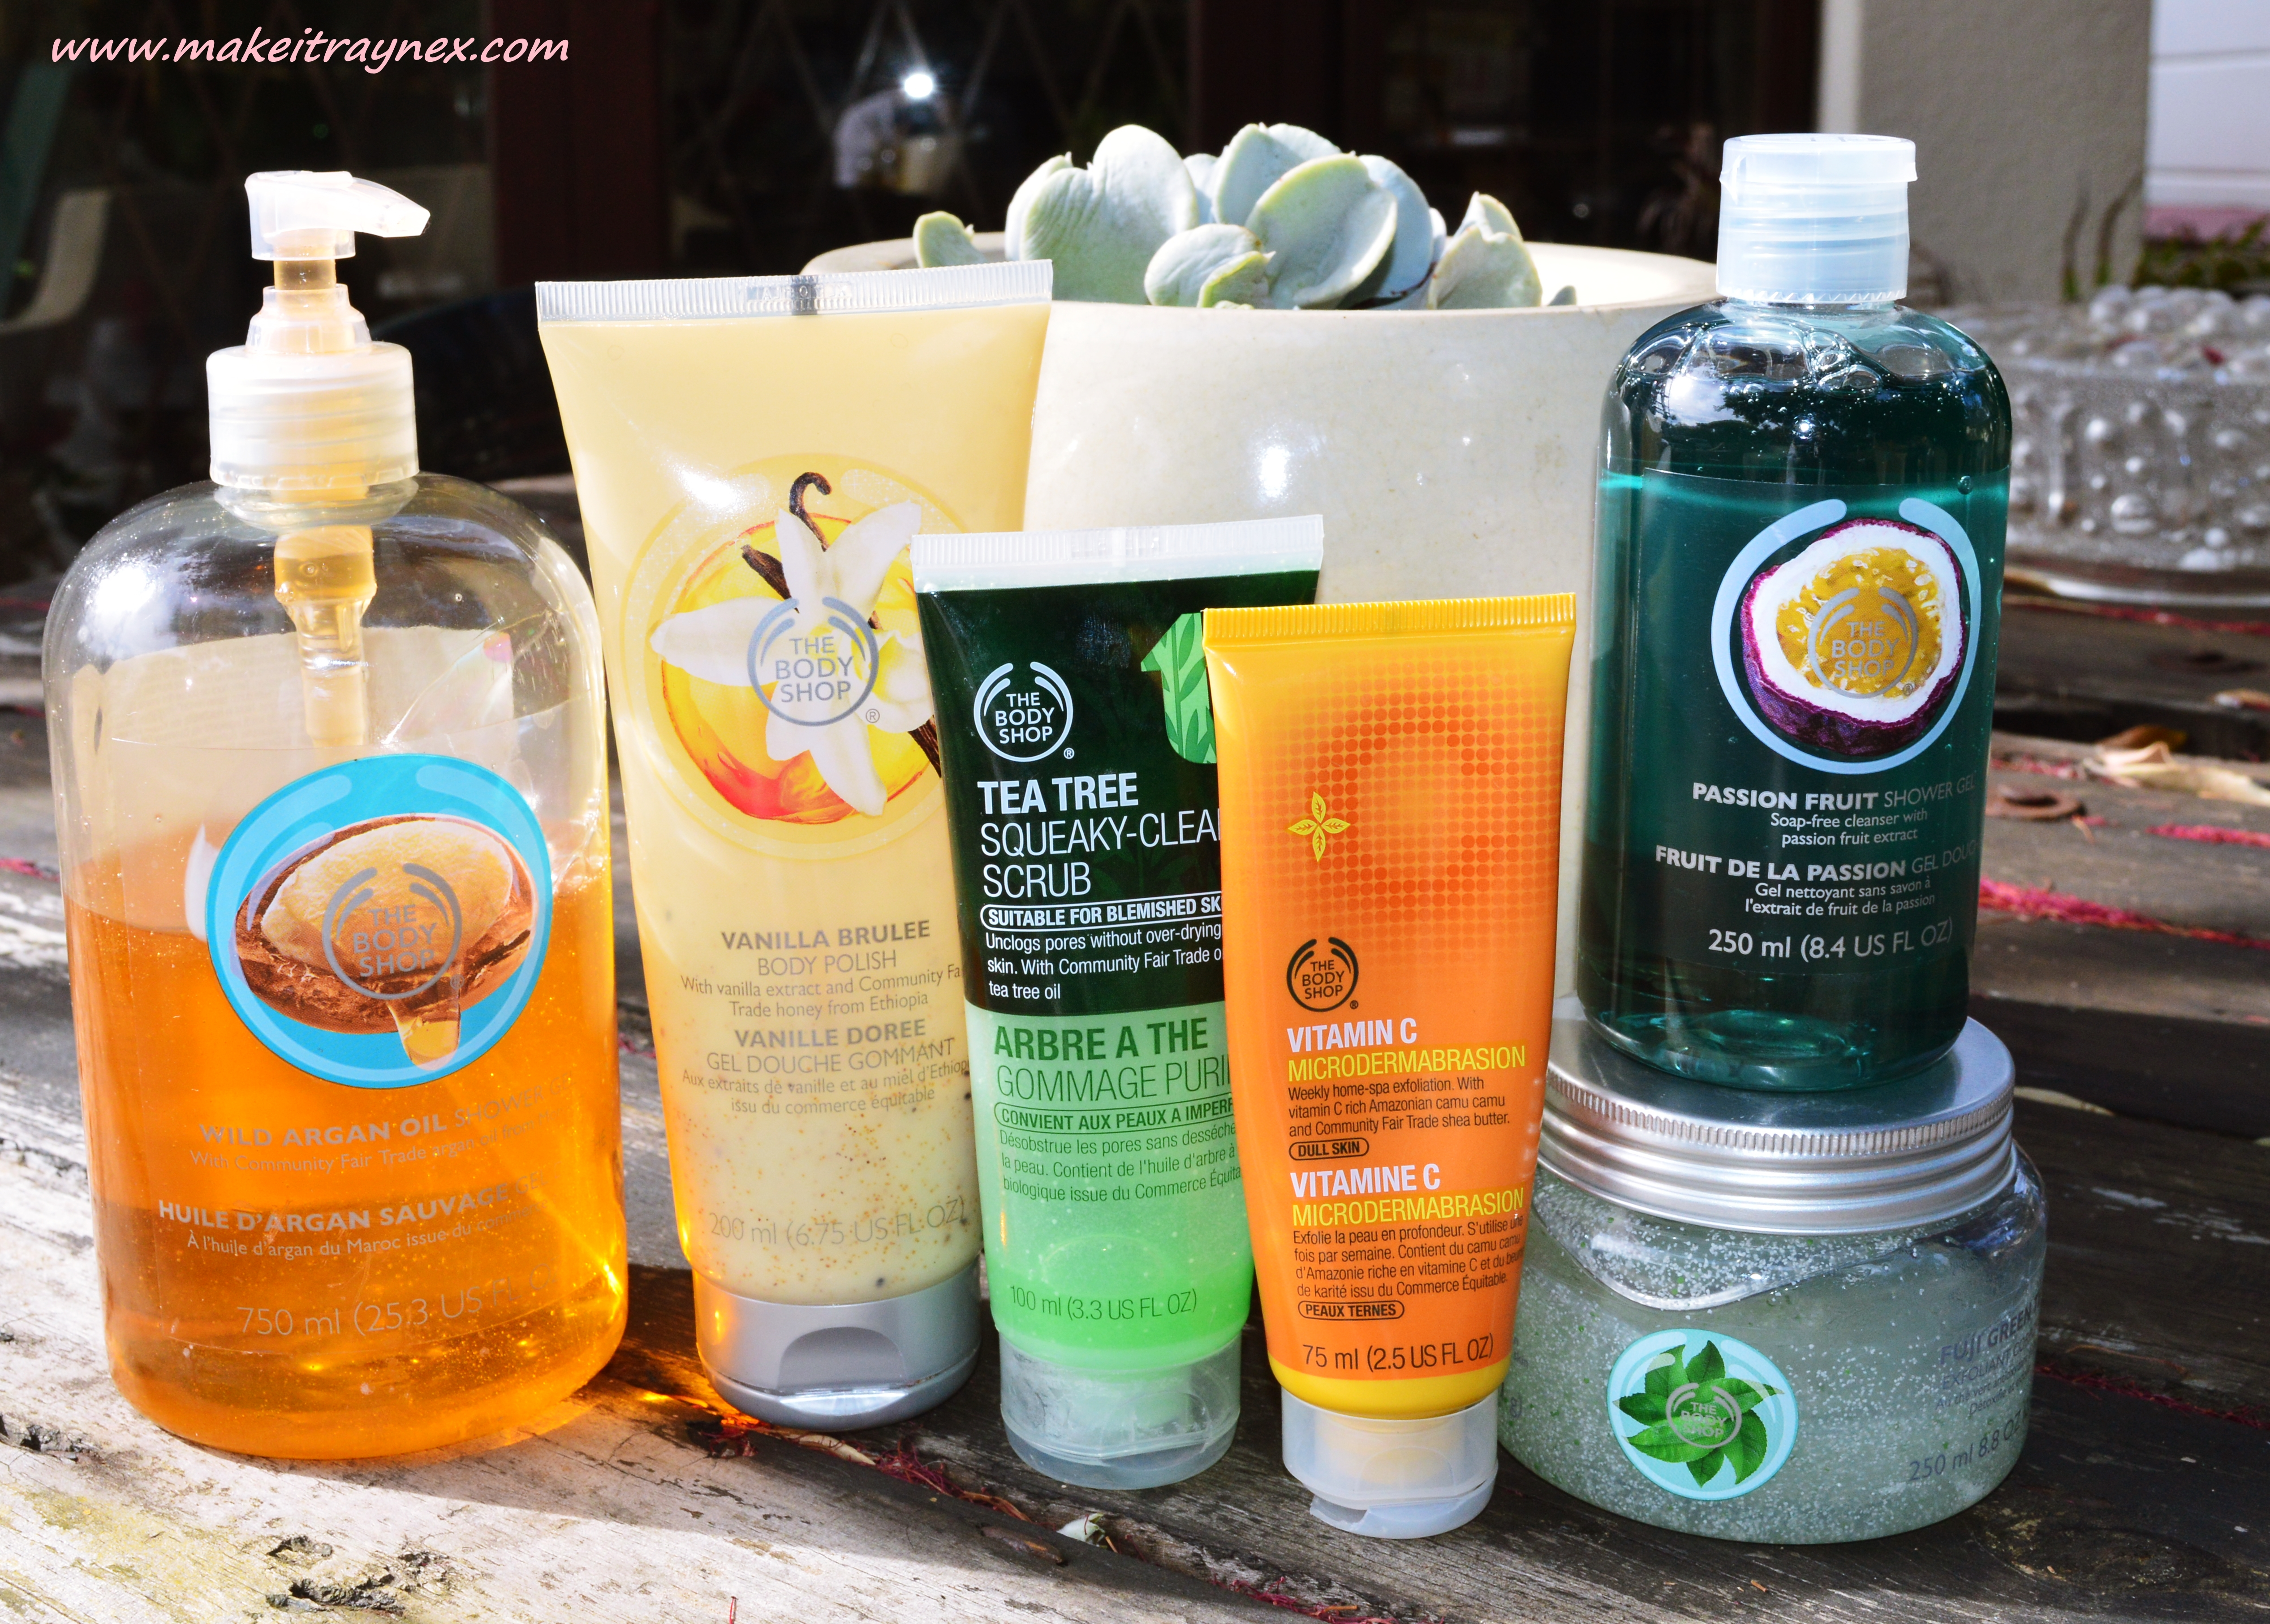 The Best of THE BODY SHOP 2015 {BEST OF – 2015}